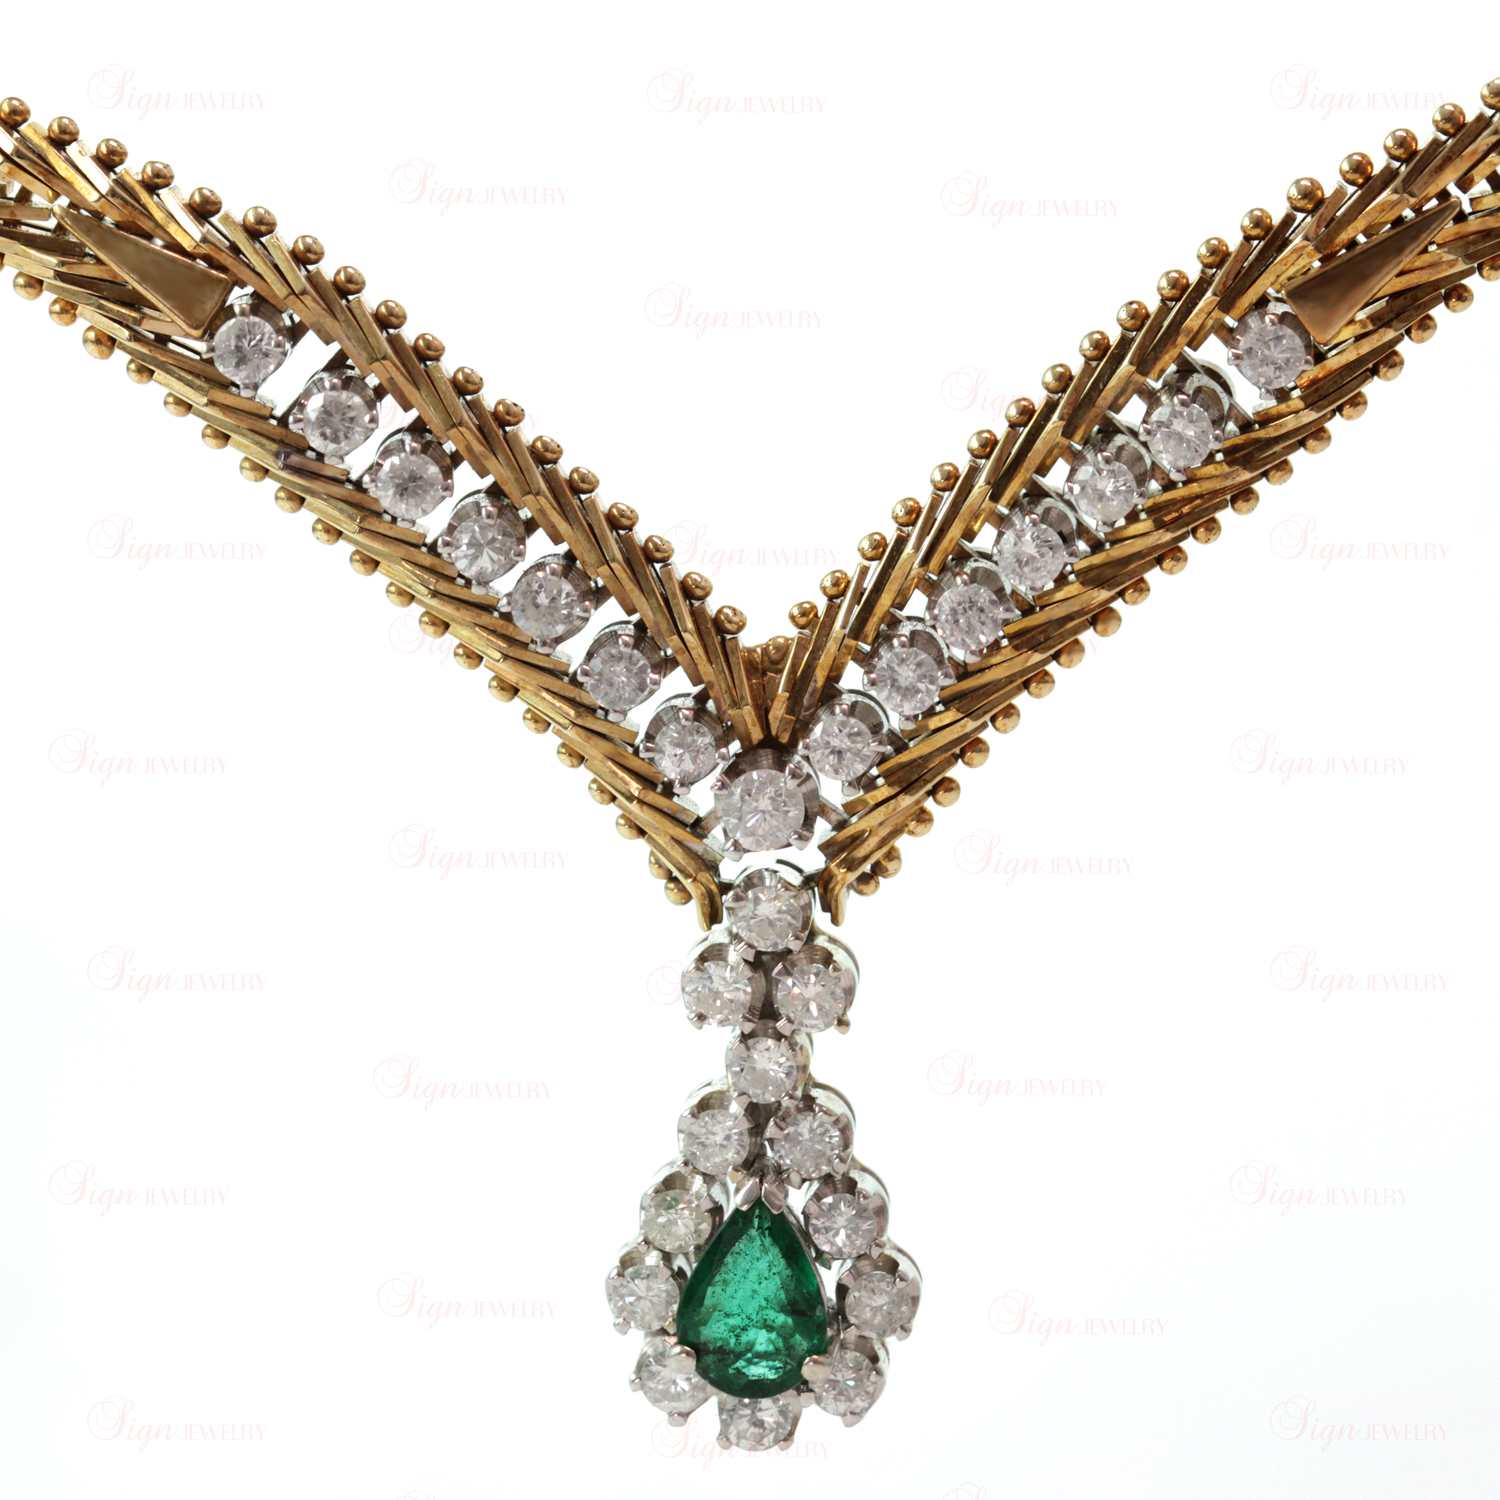 Vintage Retro Two-Tone 14k Gold Green Emerald Diamond Evening Necklace